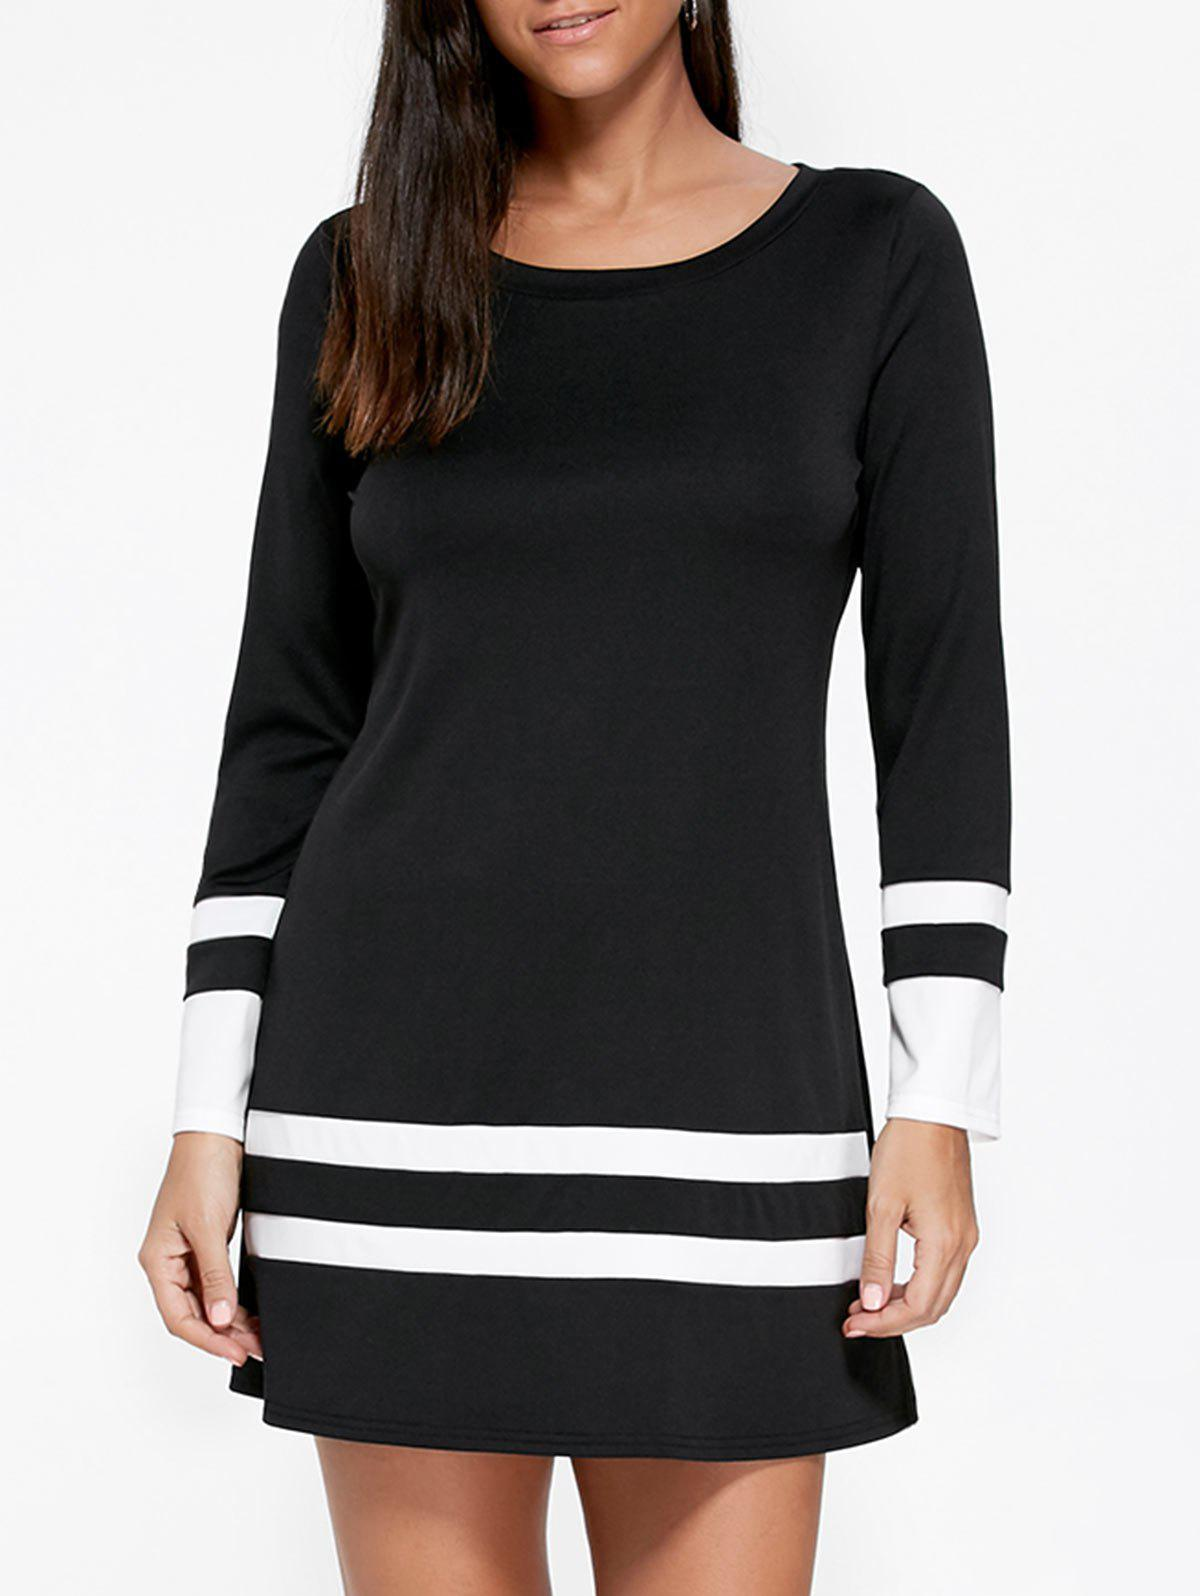 Long Sleeve Two Tone T-shirt DressWOMEN<br><br>Size: XL; Color: BLACK; Style: Casual; Material: Polyester,Spandex; Silhouette: Straight; Dresses Length: Mini; Neckline: Round Collar; Sleeve Length: Long Sleeves; Pattern Type: Striped; With Belt: No; Season: Fall,Spring,Summer; Weight: 0.3000kg; Package Contents: 1 x Dress; Occasion: Casual ,Going Out;